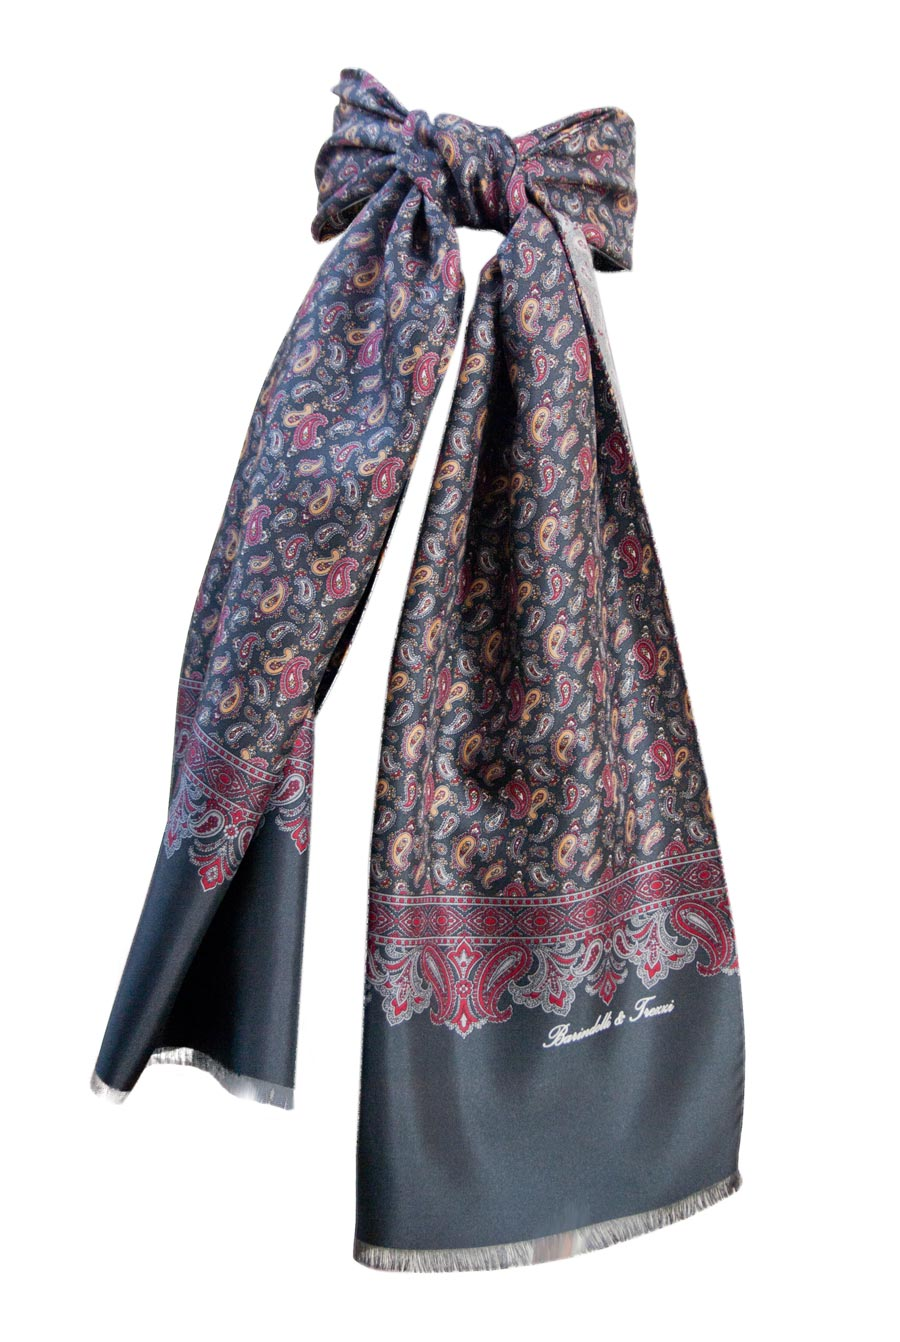 Man silk scarf - fantasy cashmere gray background